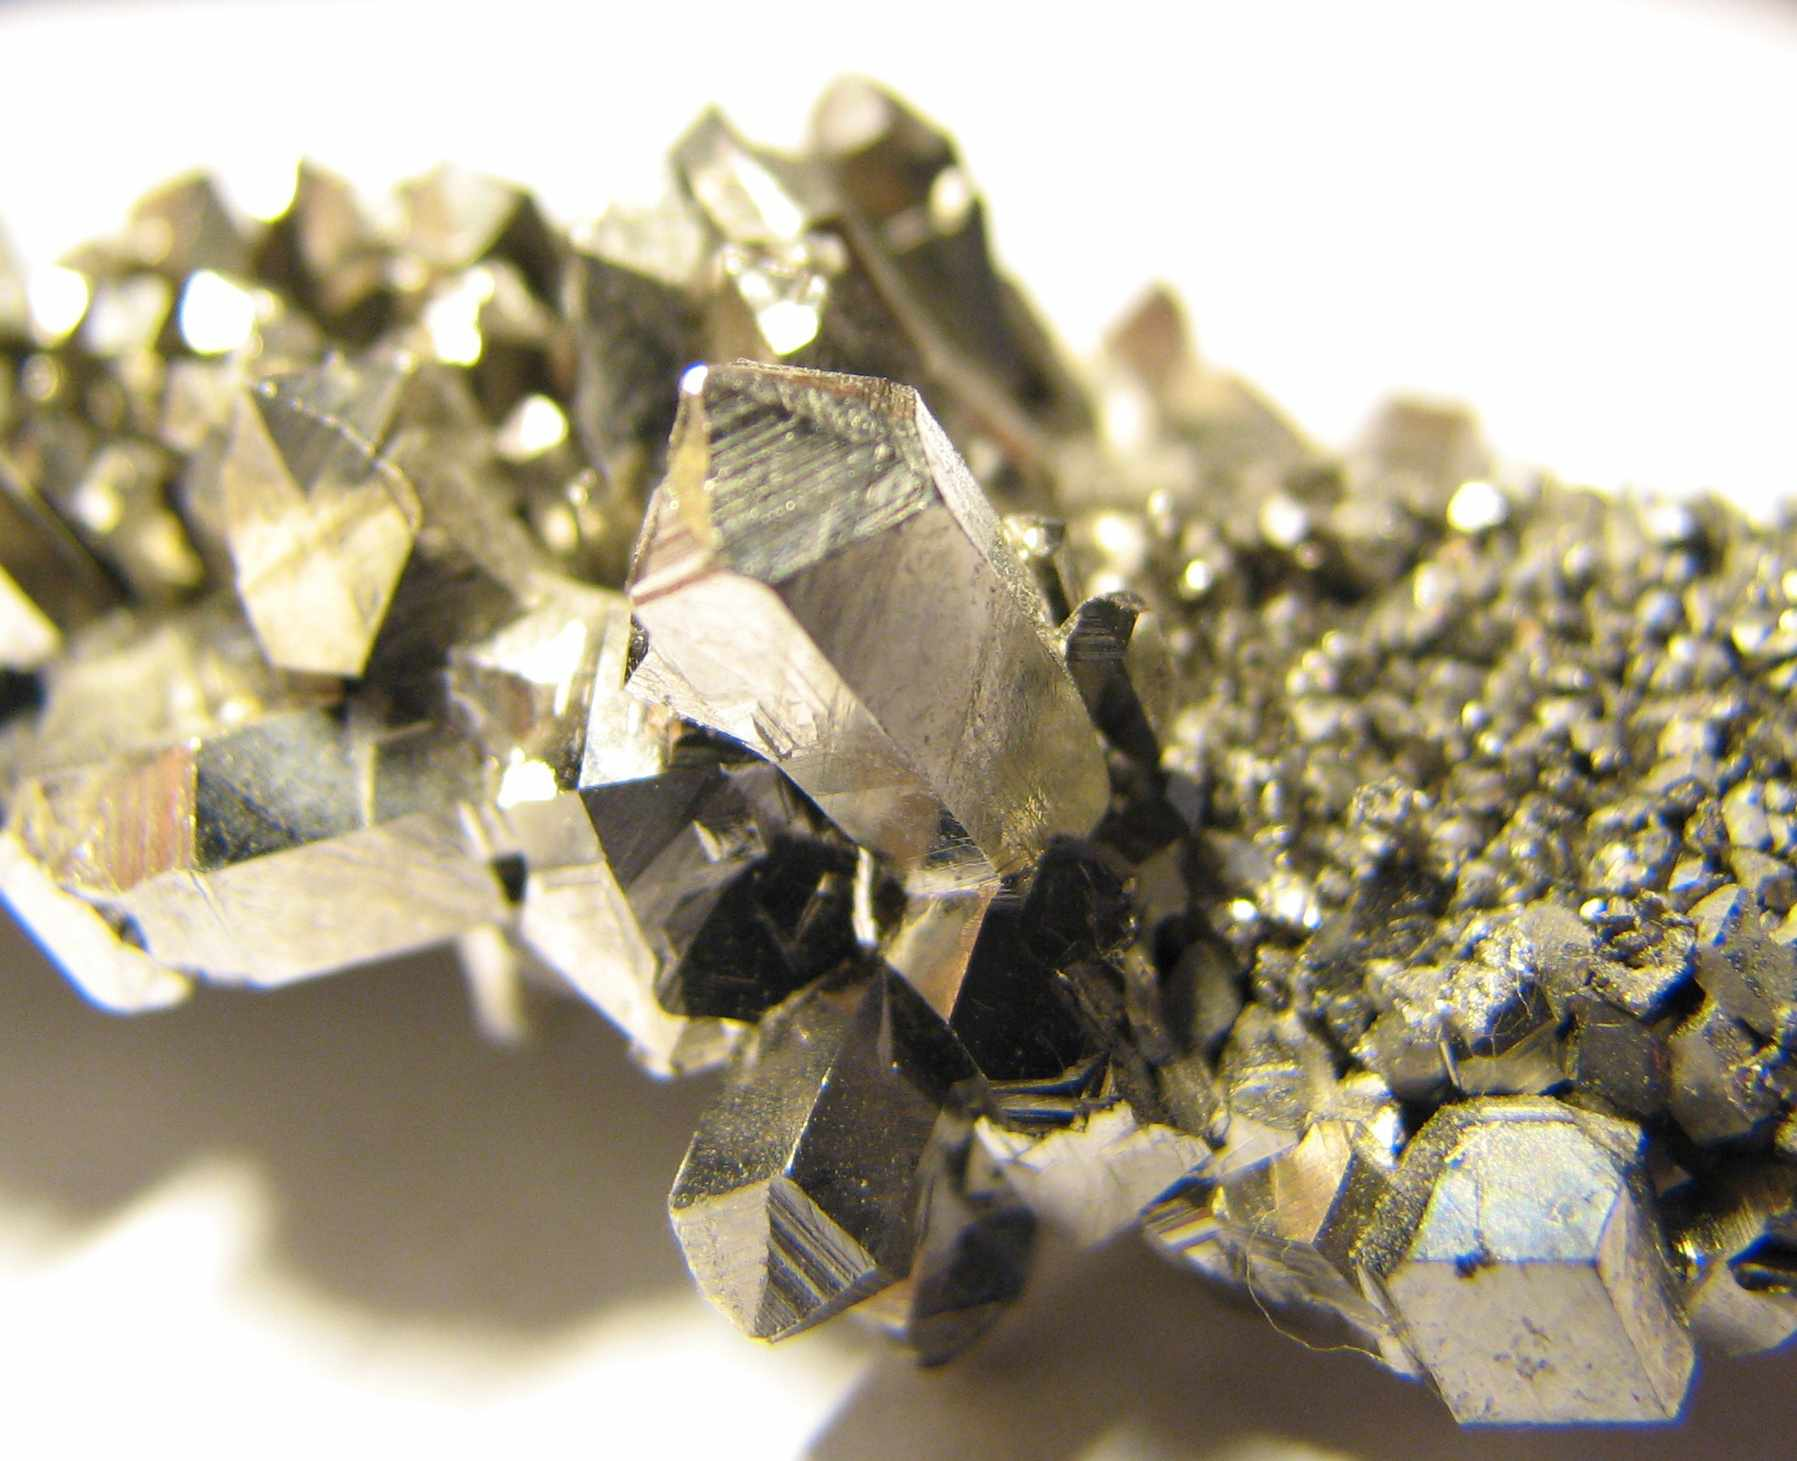 These are crystals of the metal niobium.